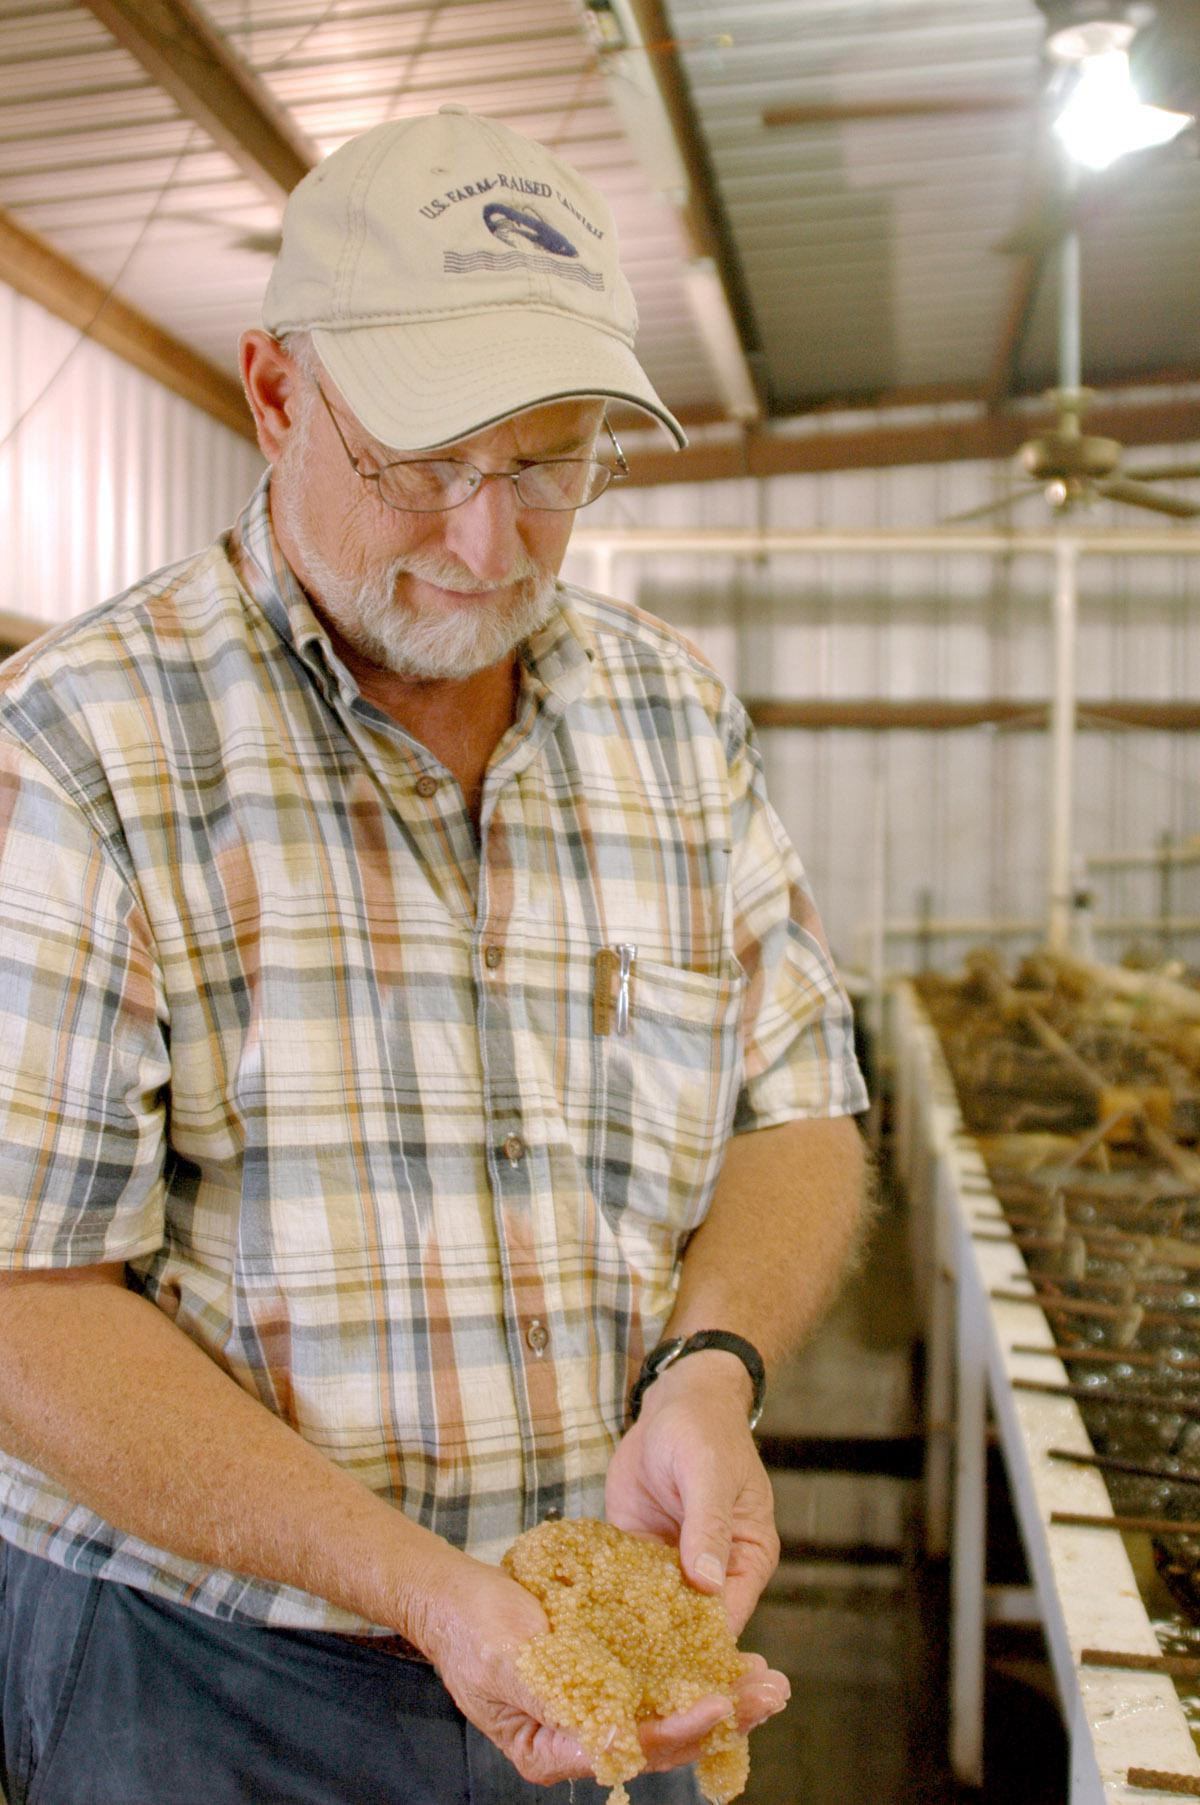 Mississippi State University Extension aquaculture specialist Jim Steeby inspects a catfish egg mass at the L&S Fish Farm catfish hatchery in Leland. (Photo by Robert H. Wells/MSU Delta Research and Extension Center)